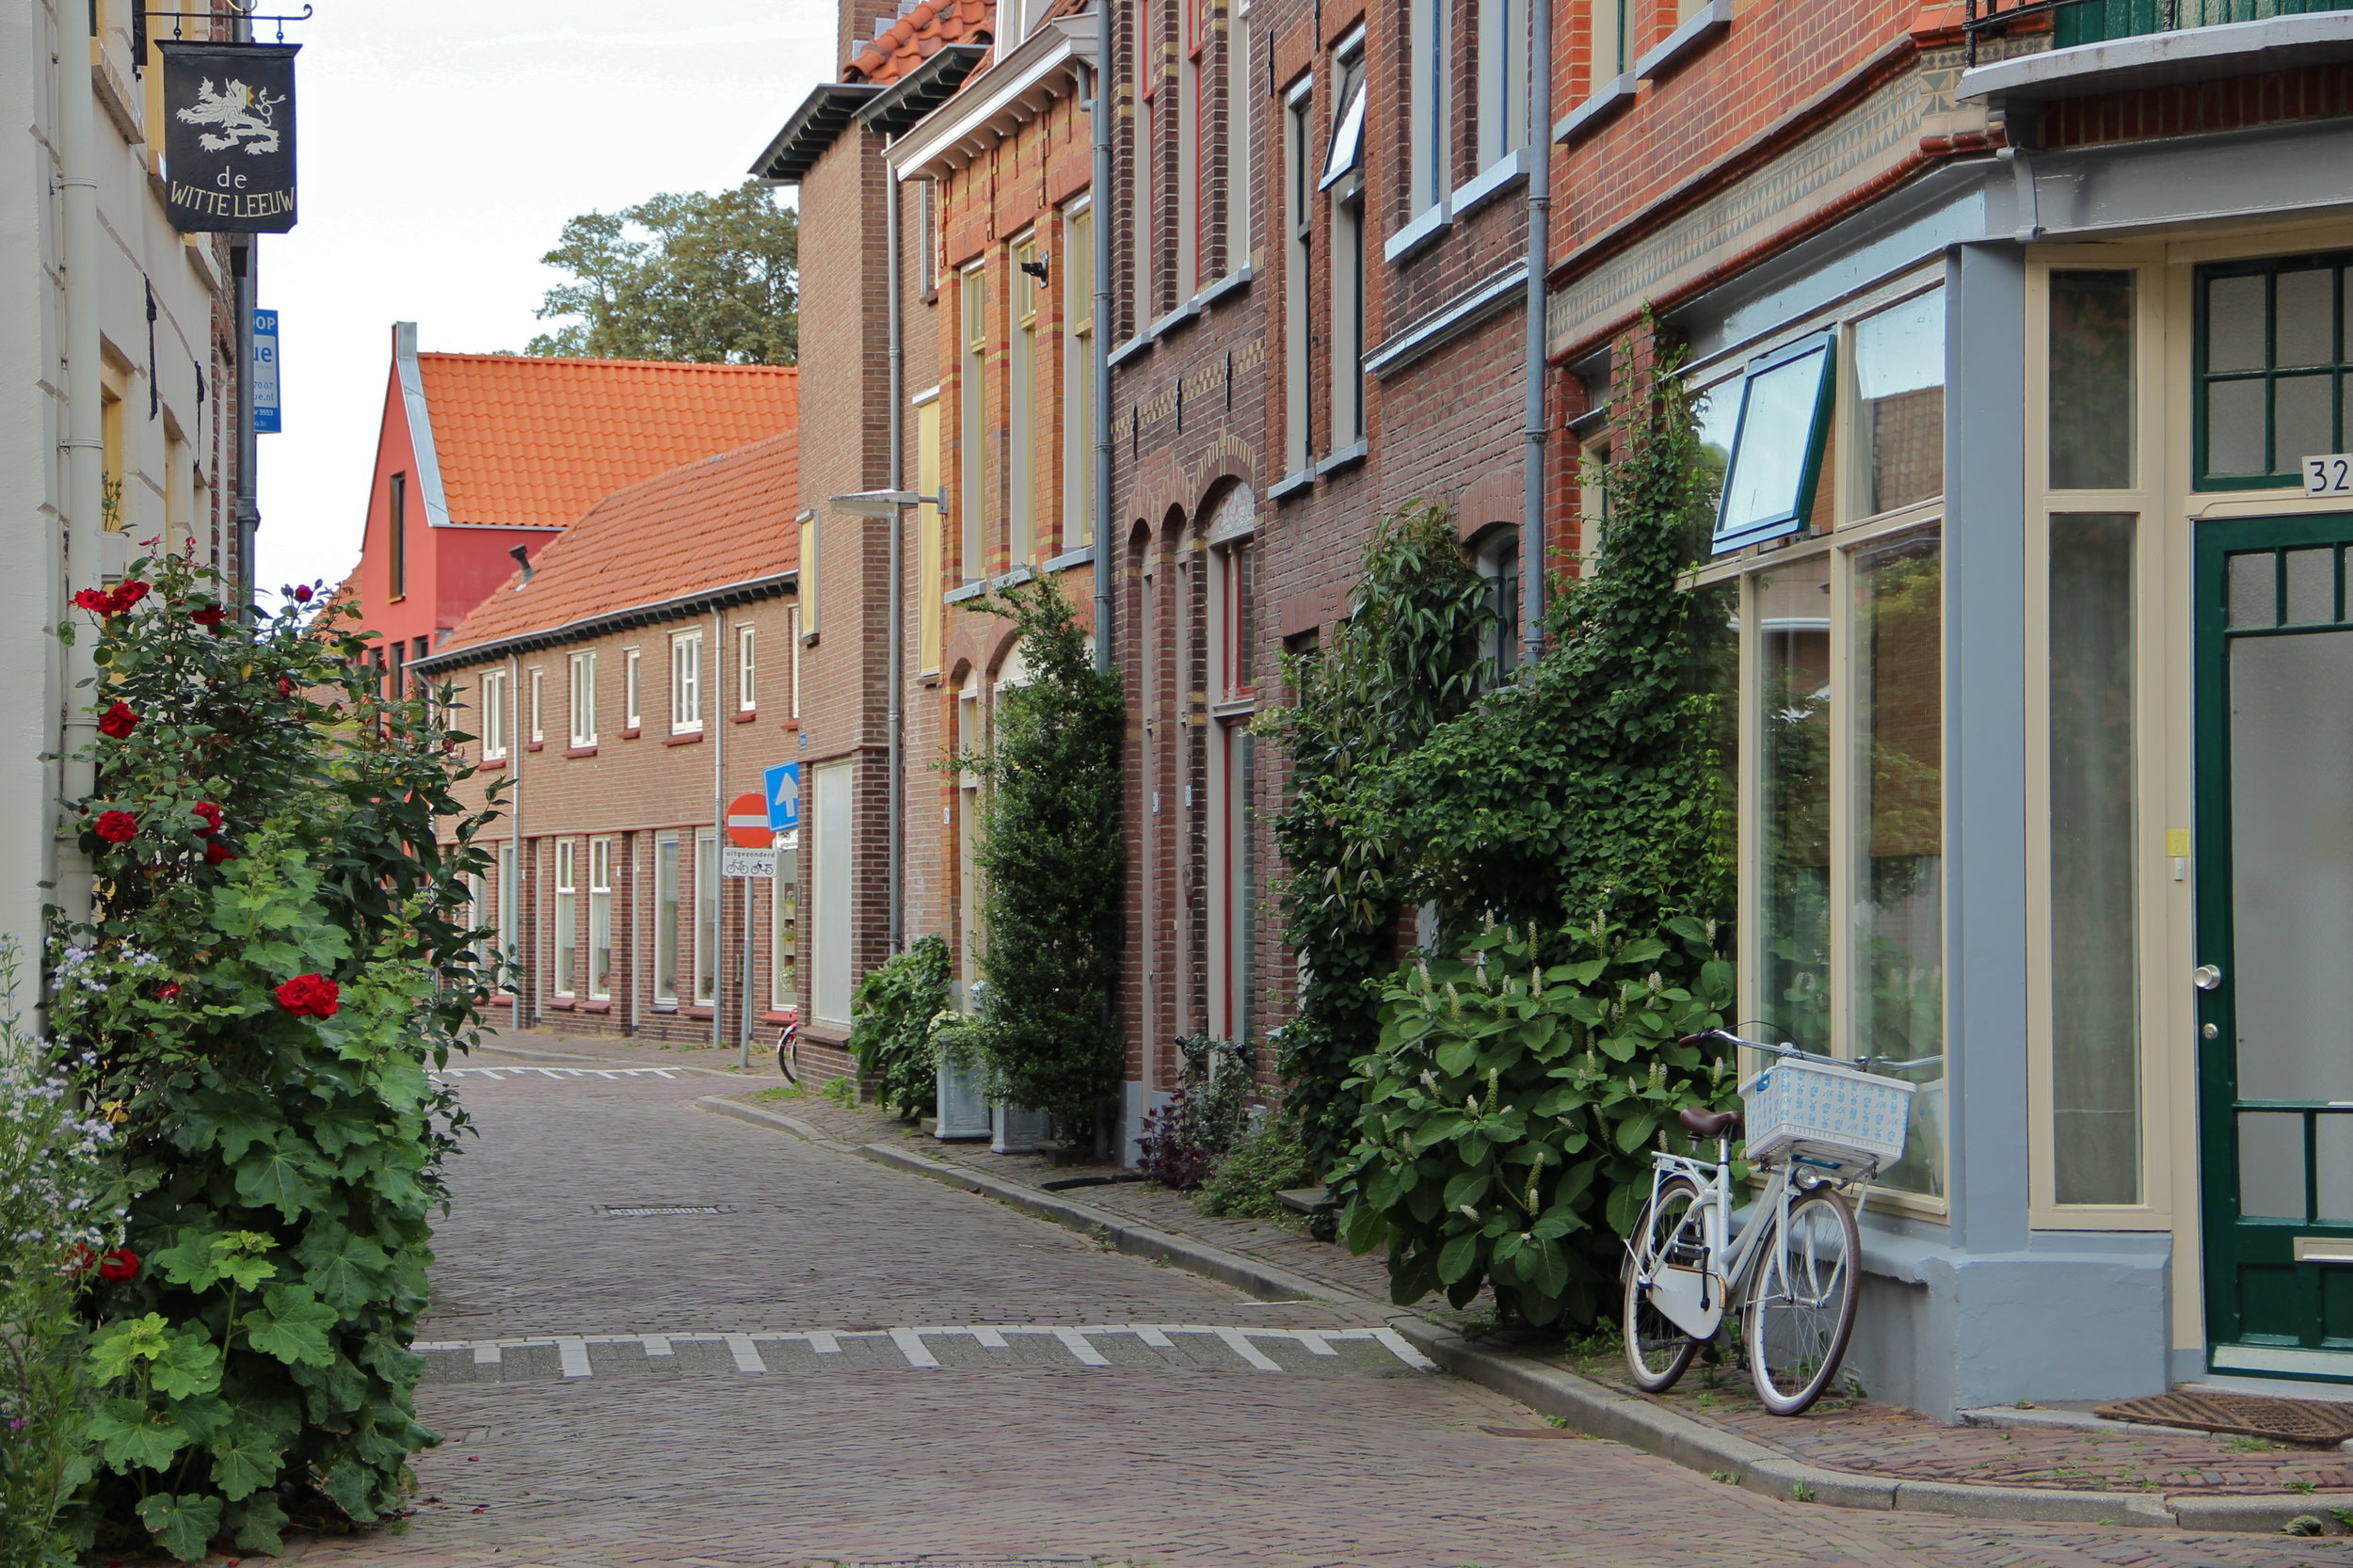 a quiet scene of life in Zutphen, the Netherlands